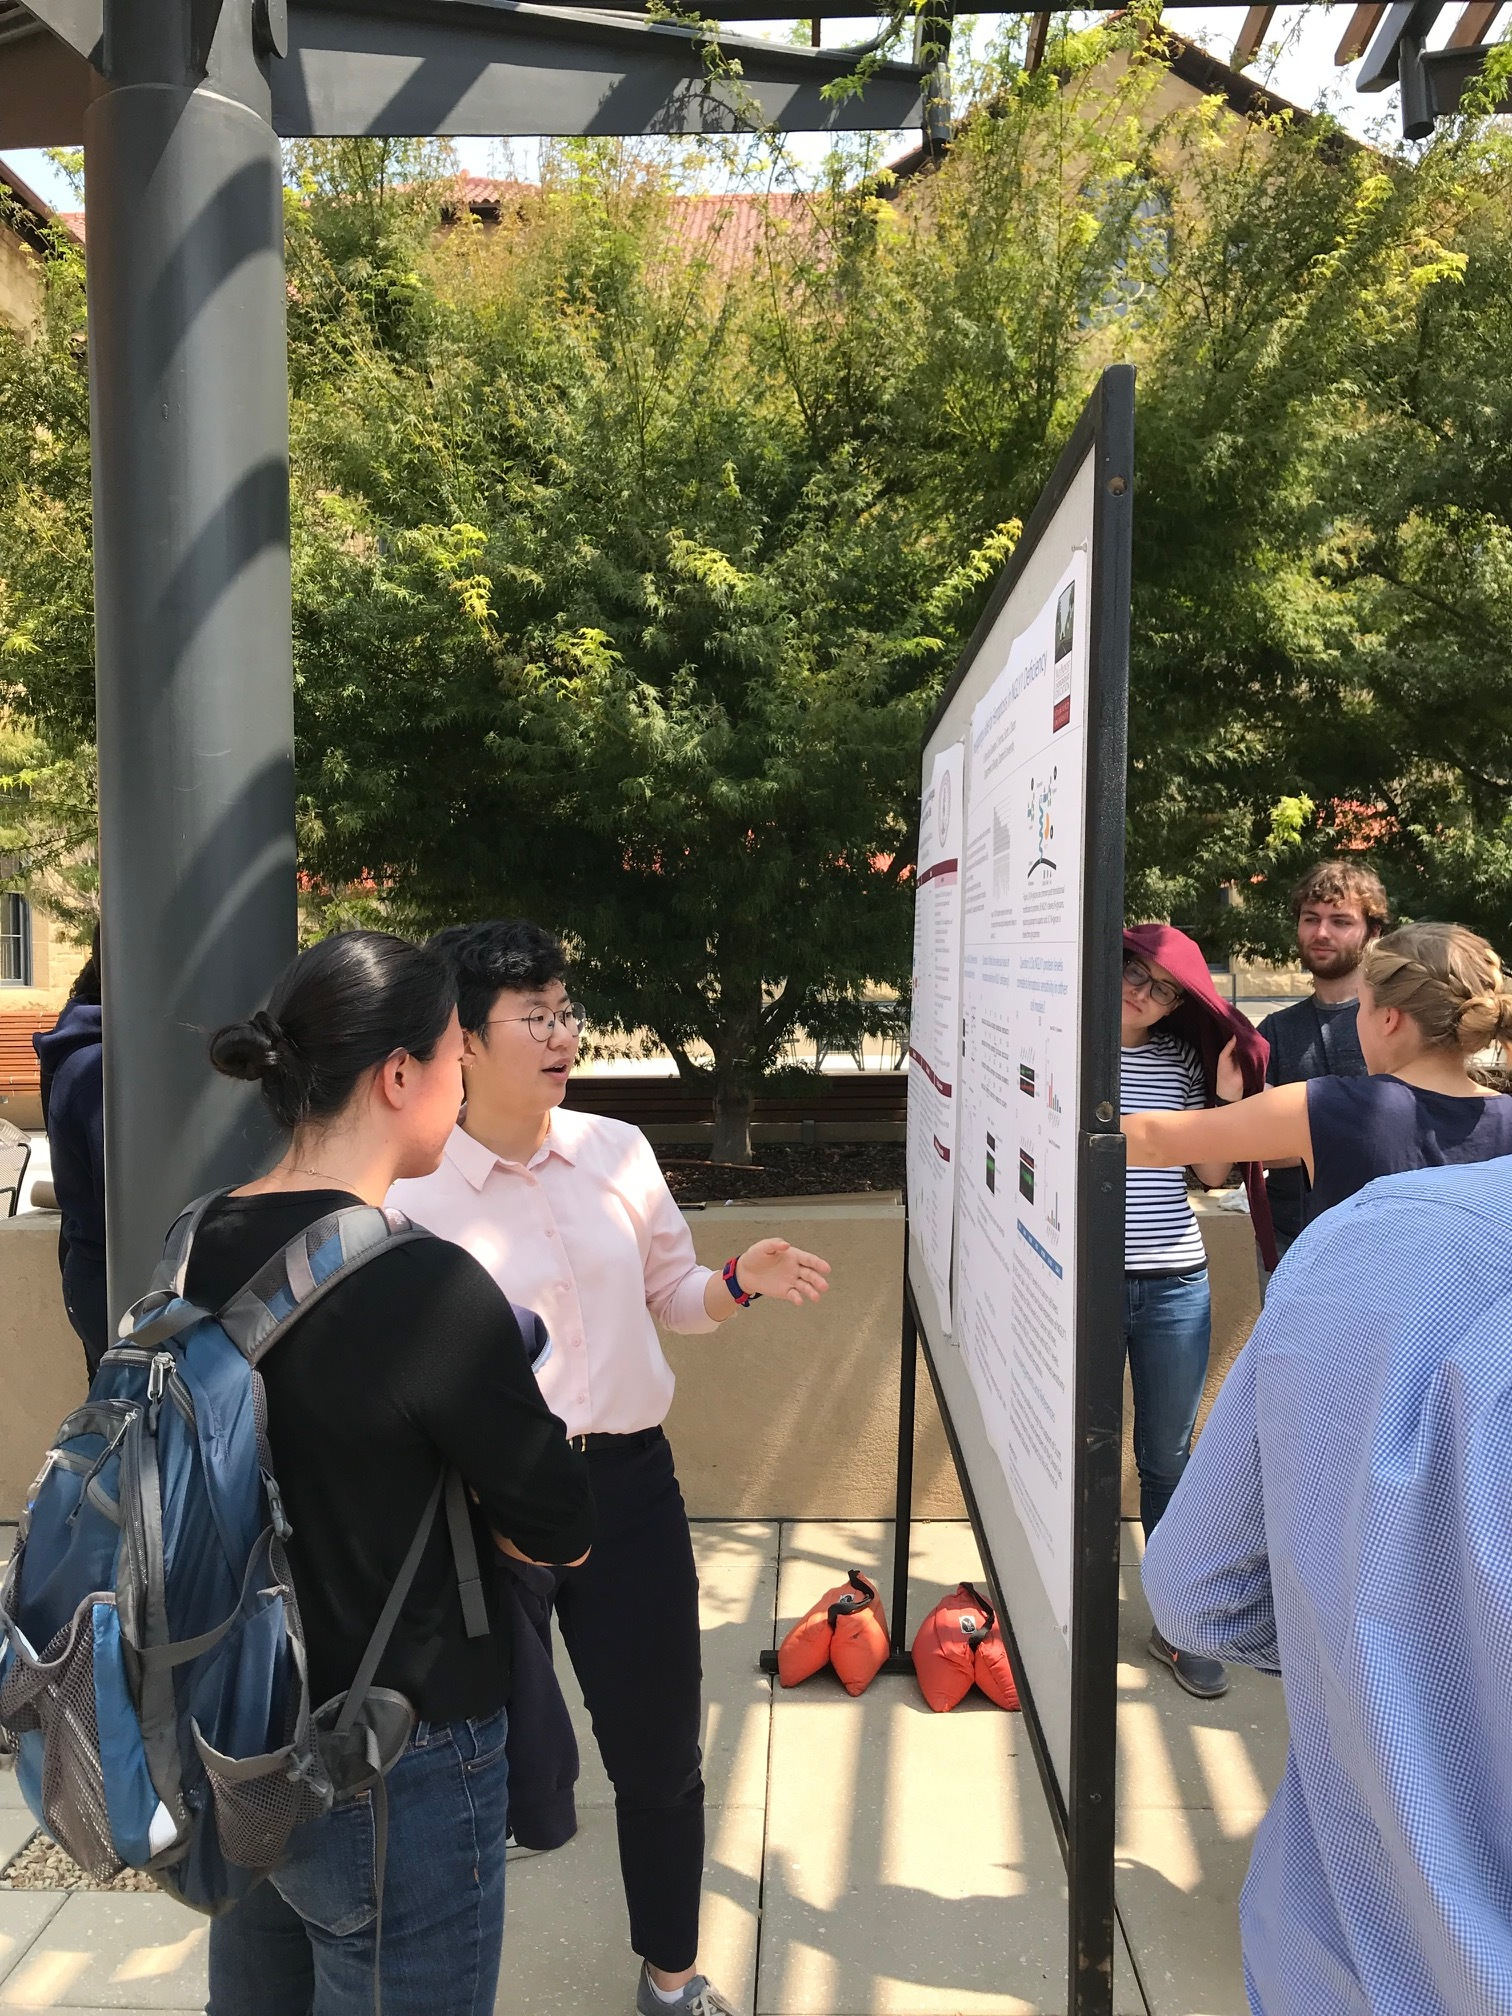 Julie Lee discussing her summer research at the SURP poster session - 22 August 18